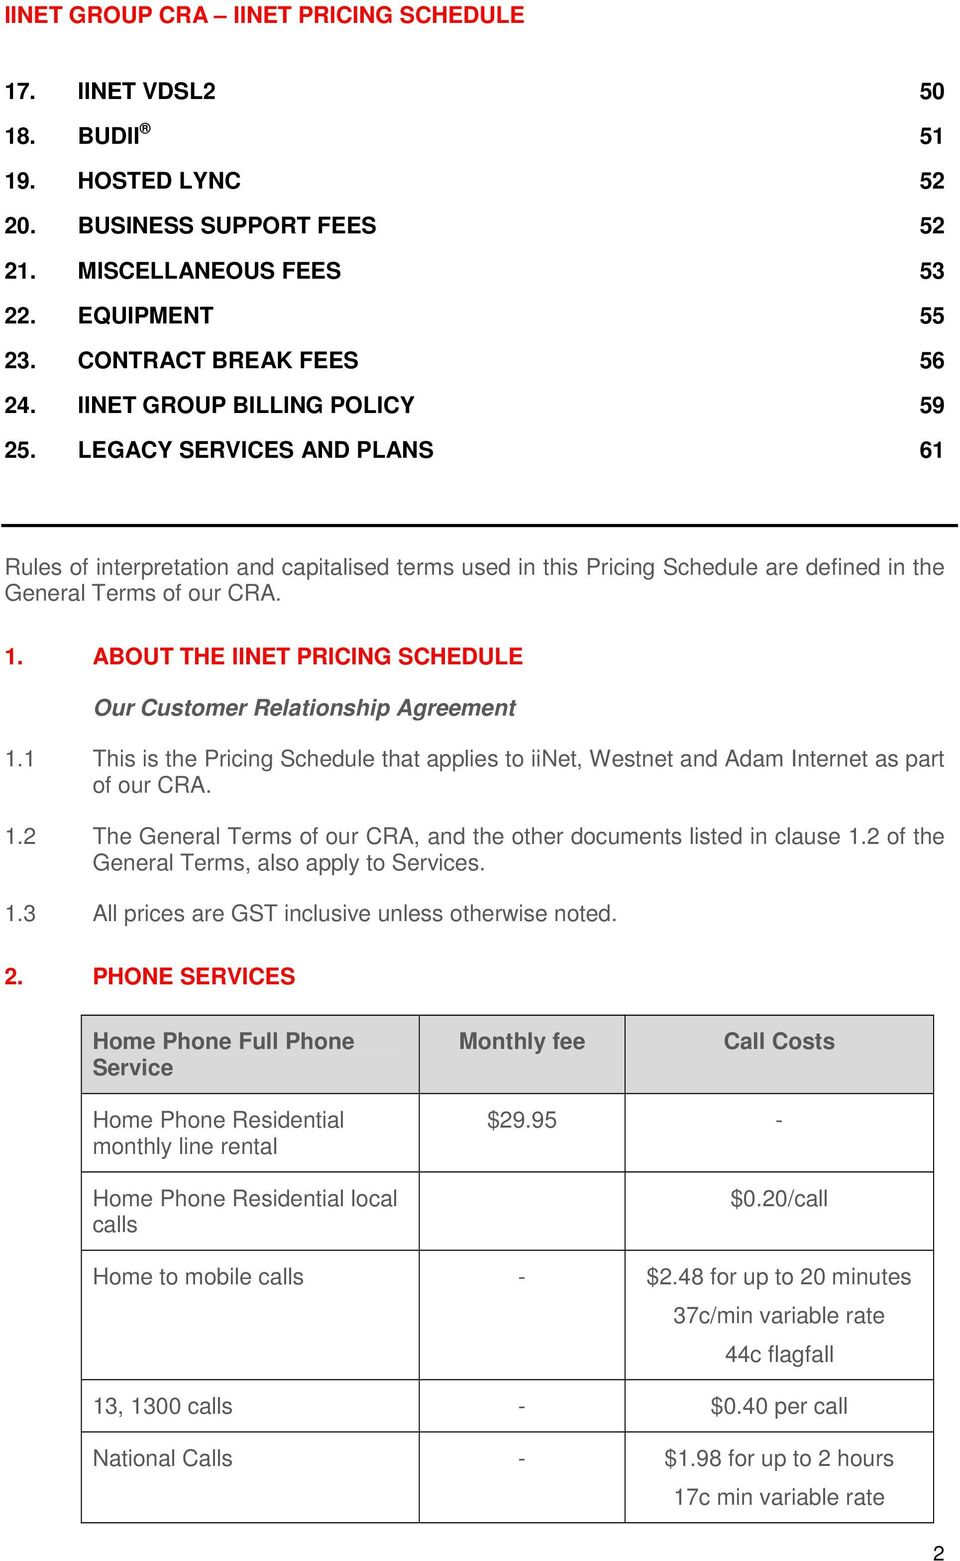 ABOUT THE IINET PRICING SCHEDULE Our Customer Relationship Agreement 1.1 This is the Pricing Schedule that applies to iinet, Westnet and Adam Internet as part of our CRA. 1.2 The General Terms of our CRA, and the other documents listed in clause 1.